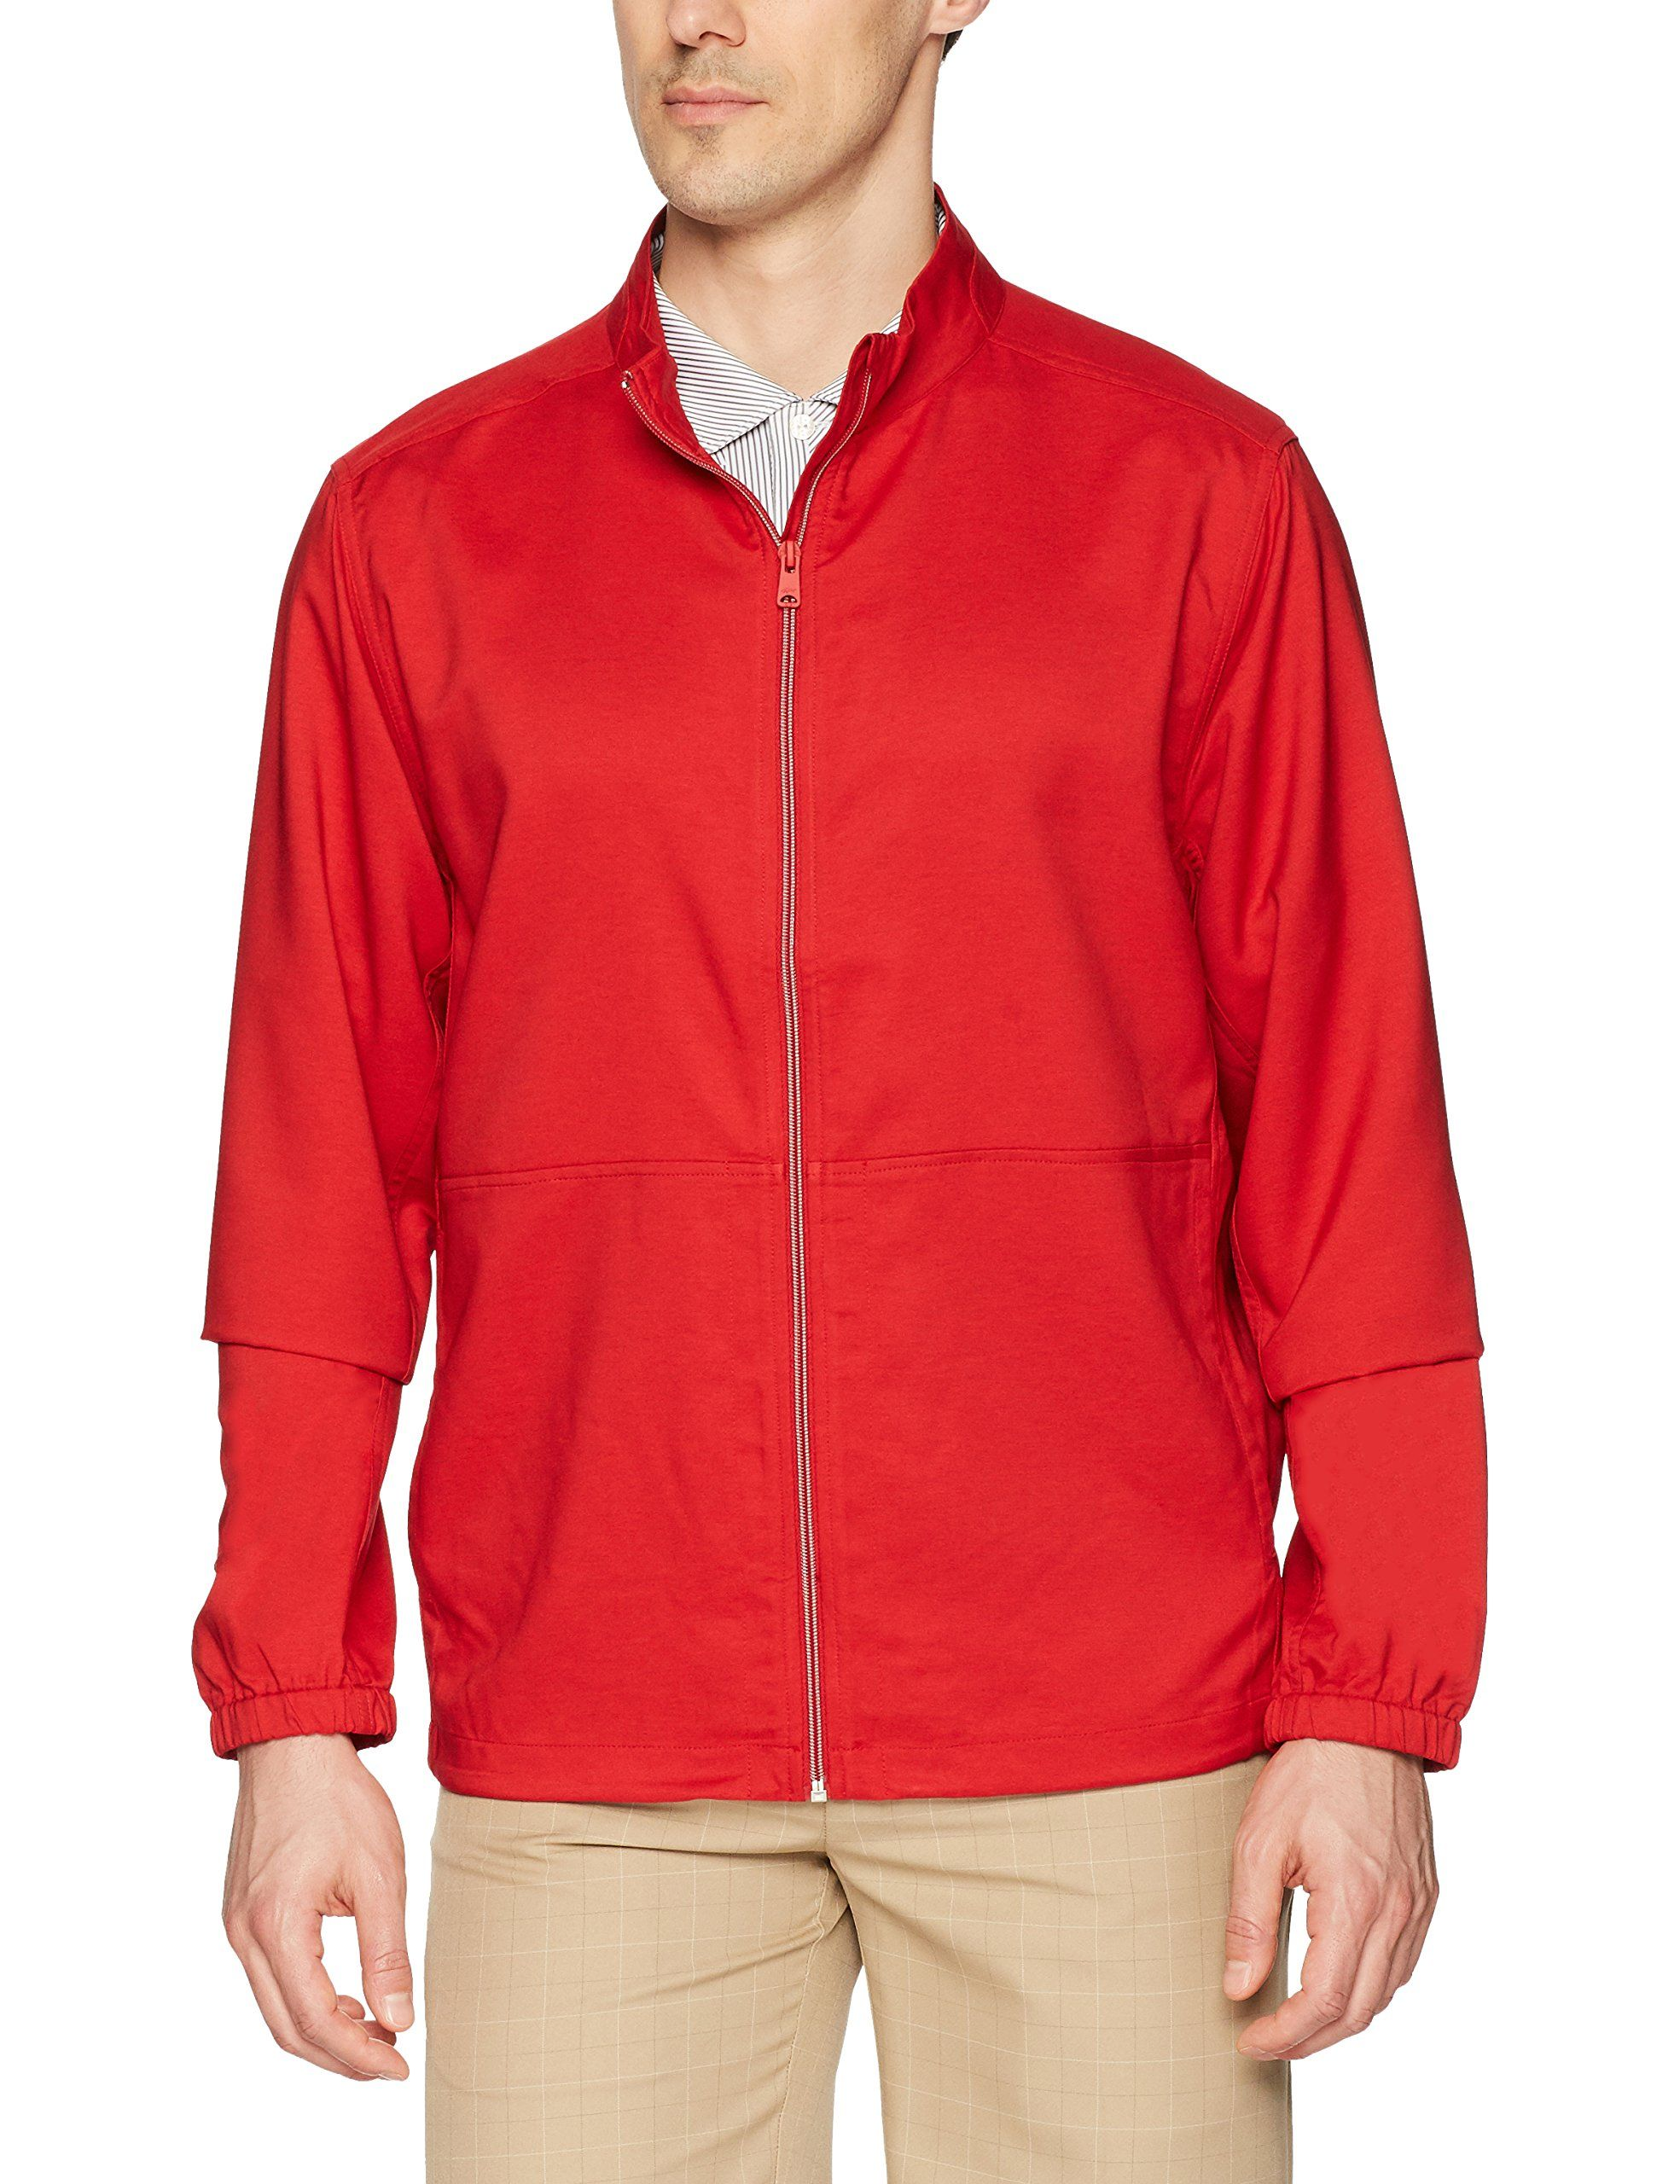 Men Golf Clothing Greg Norman Mens Full Zip Windbreaker Jacket